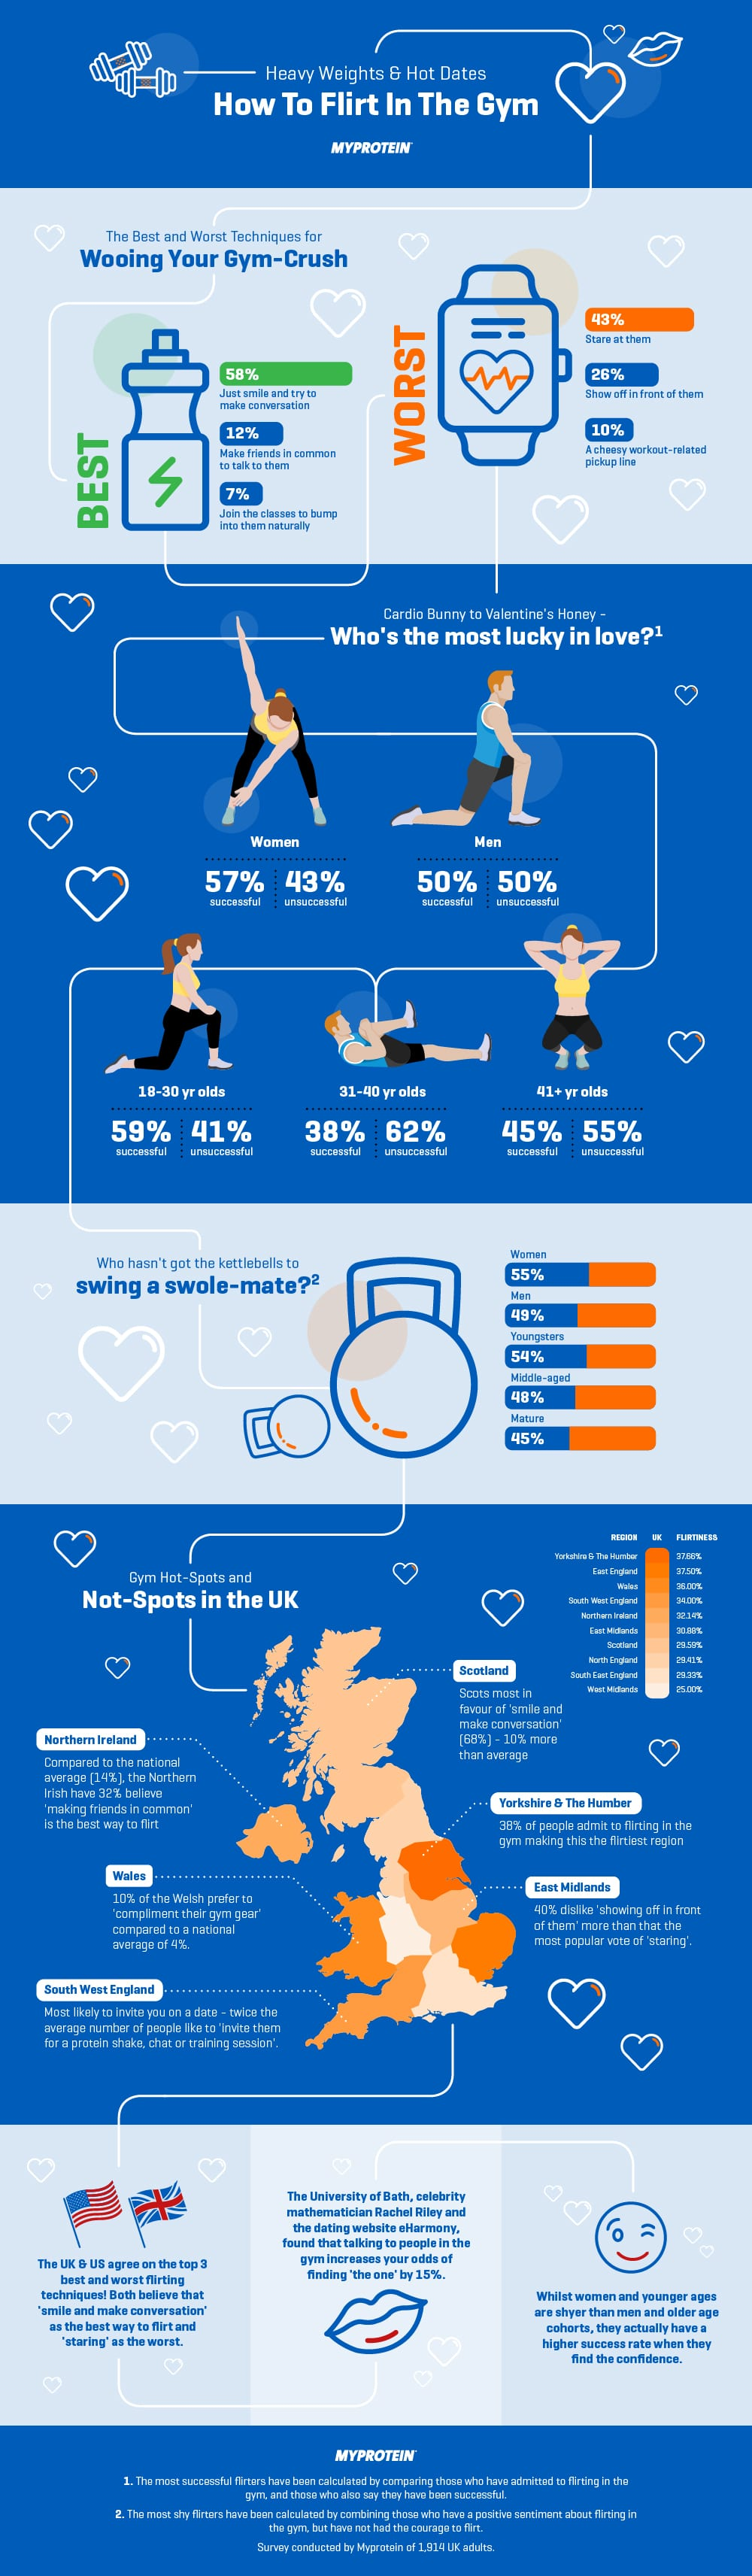 Flirting in the Gym - UK results